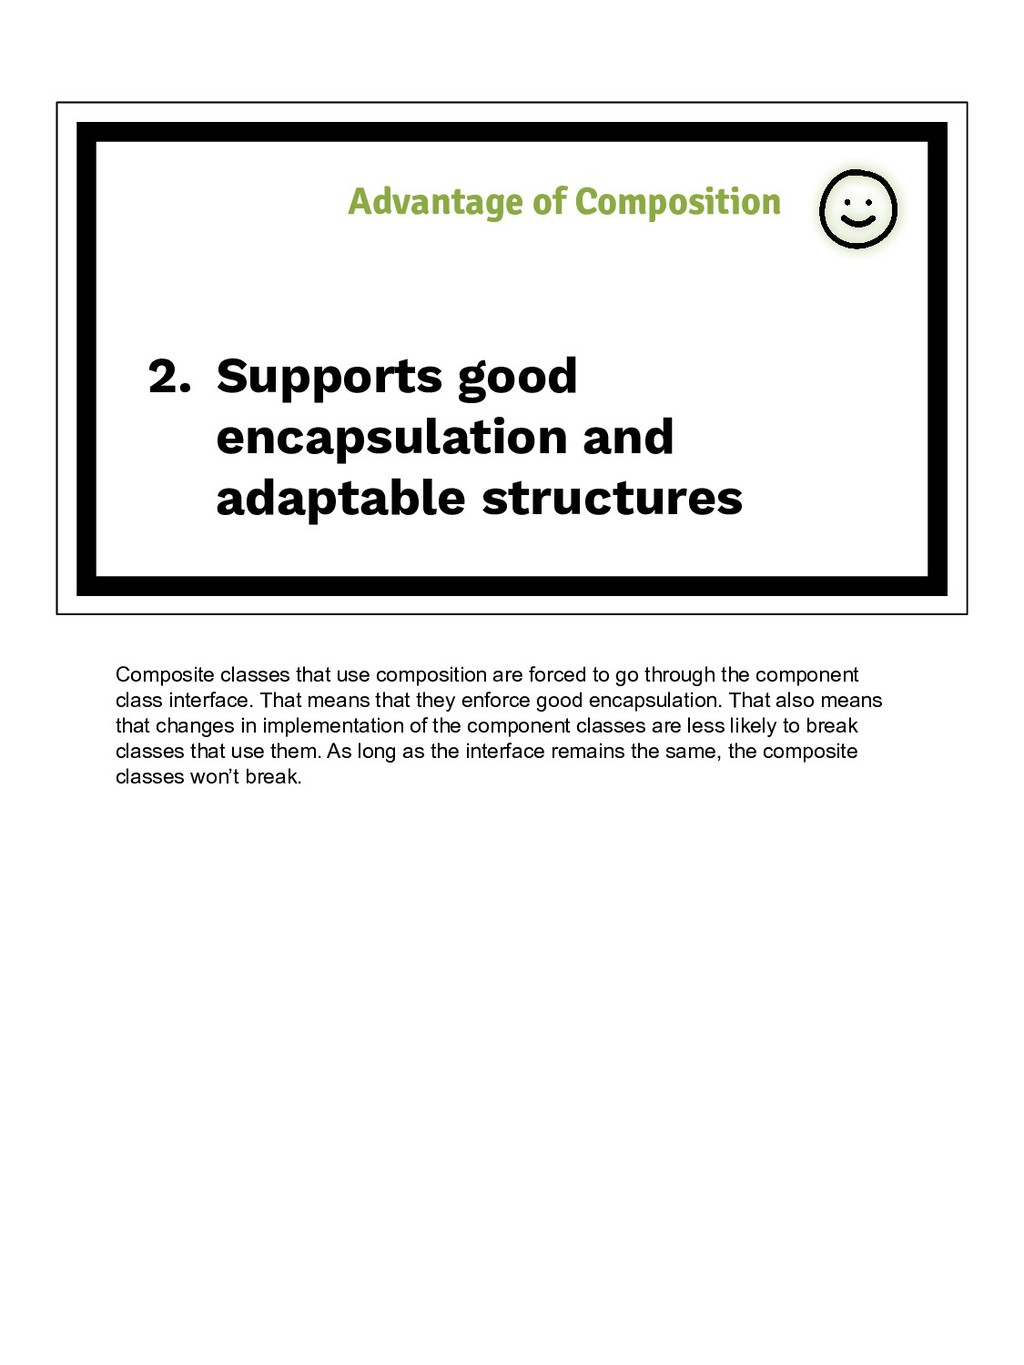 2. Supports good encapsulation and adaptable st...